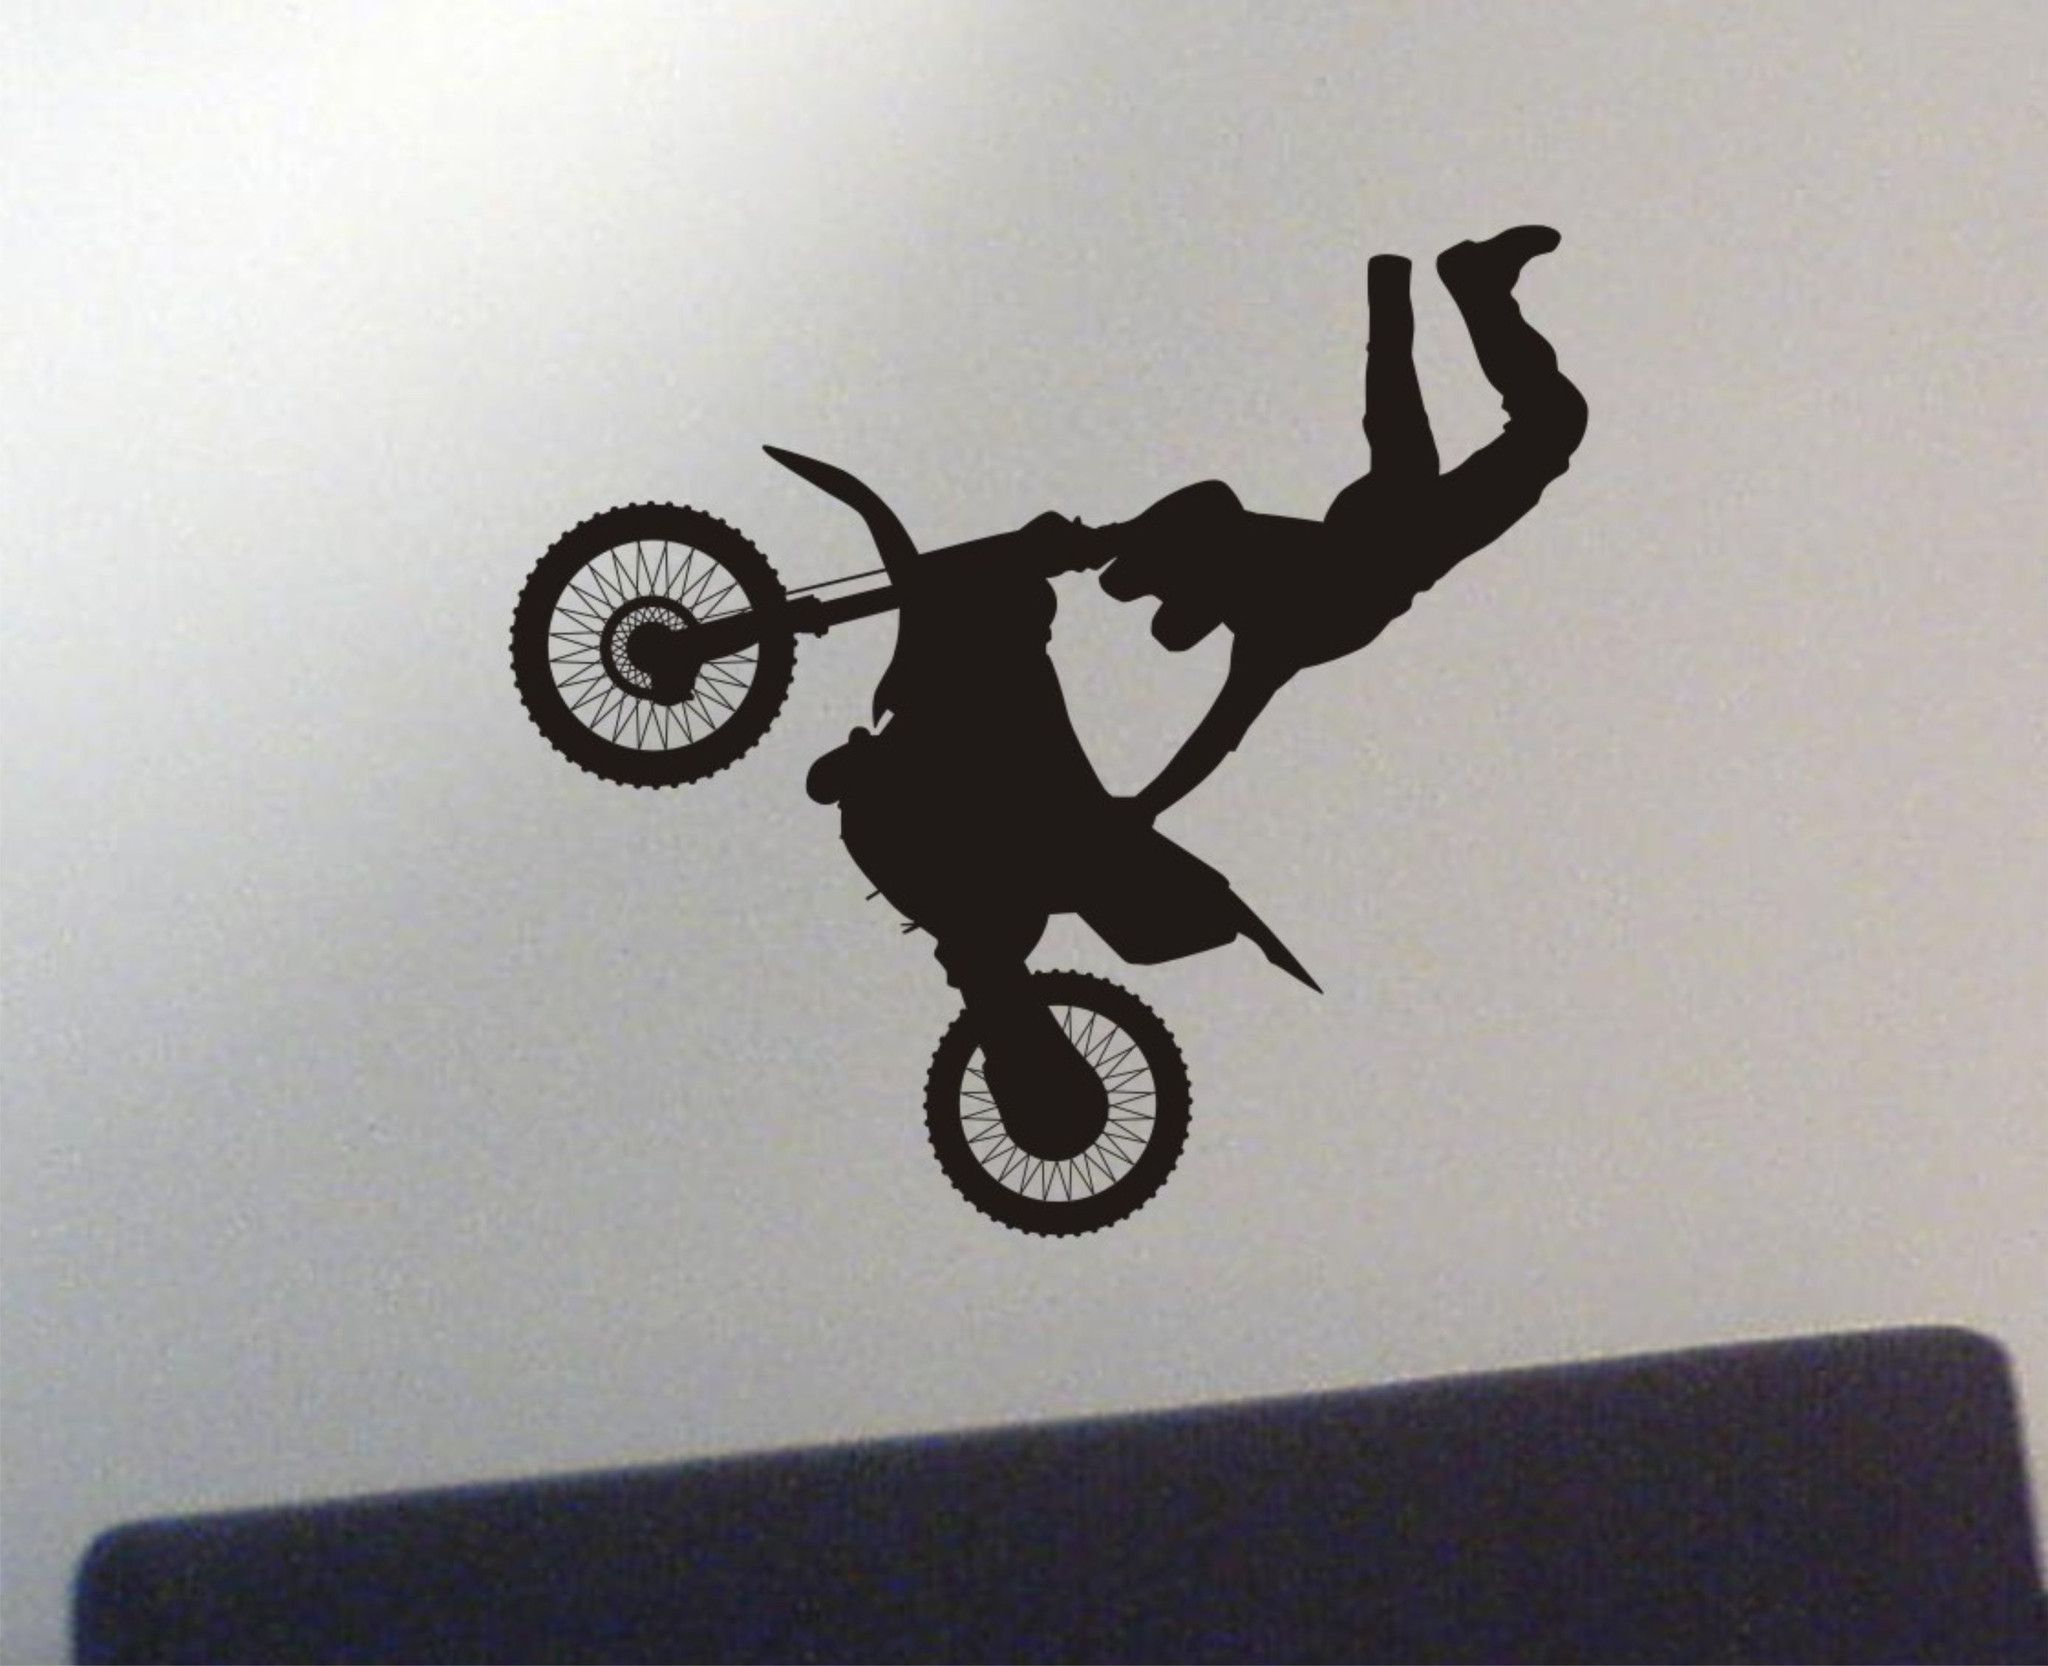 Dirtbike wall decal - motocross sticker | Dco